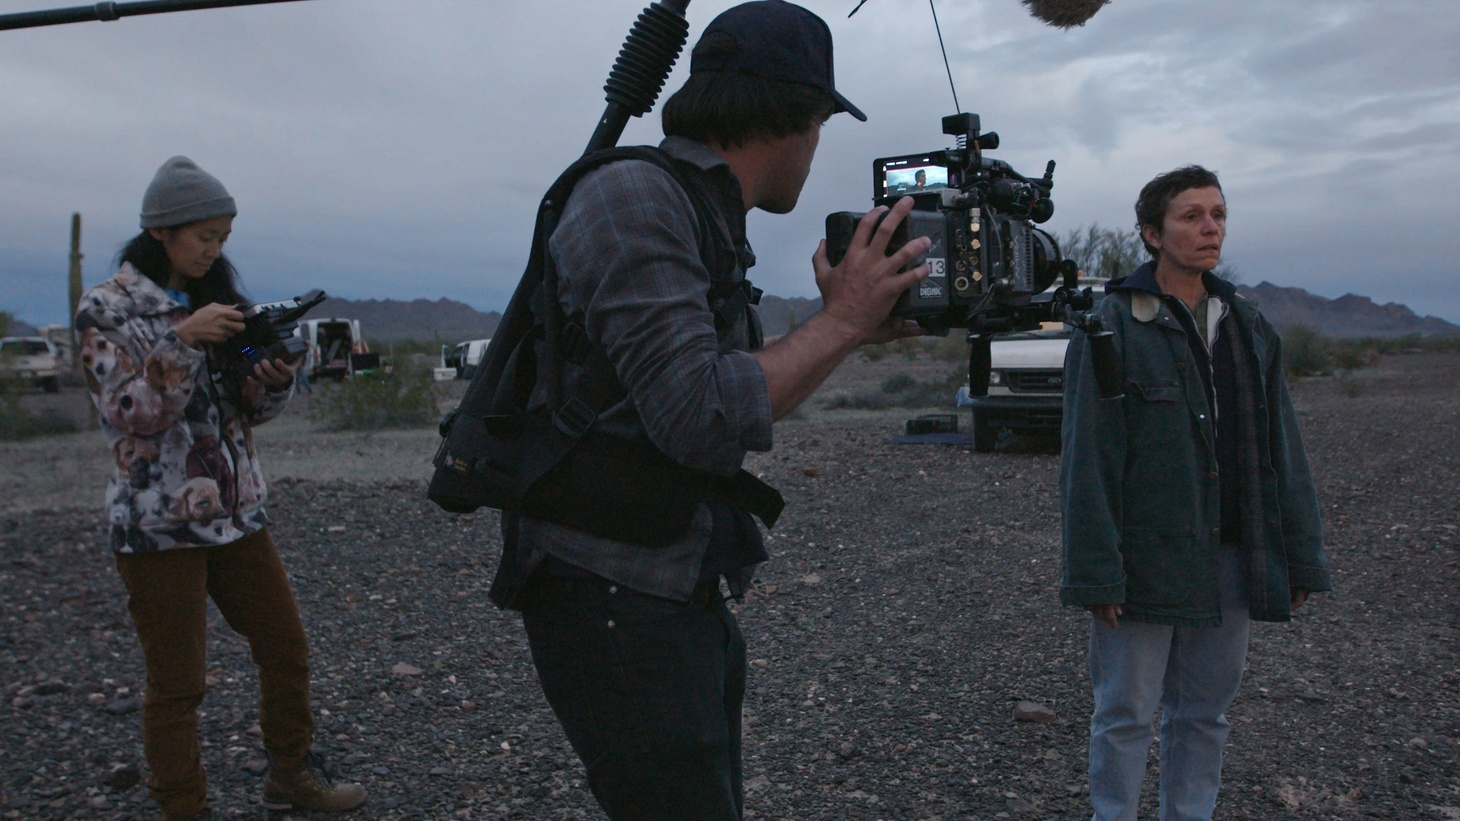 """Nomadland"" and its director Chloé Zhao are both considered frontrunners in this year's Oscar race. But with theaters closed for most of the past year, how many people have actually seen it?"